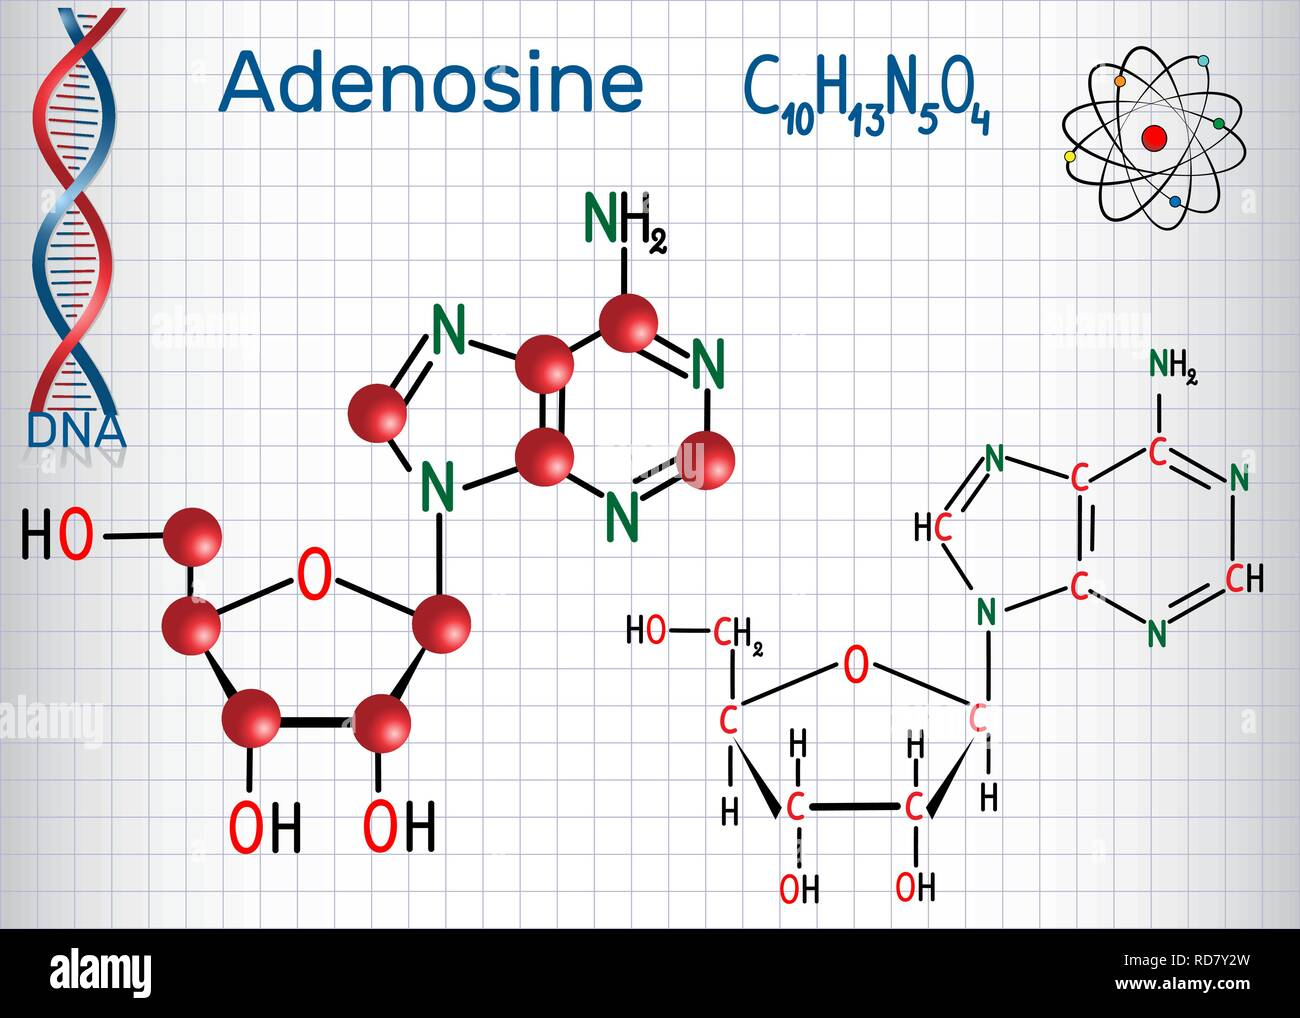 Adenosine - purine nucleoside molecule, is important part of ATP, ADP, cAMP , RNA, DNA. Sheet of paper in a cage. Structural chemical formula and mole - Stock Image